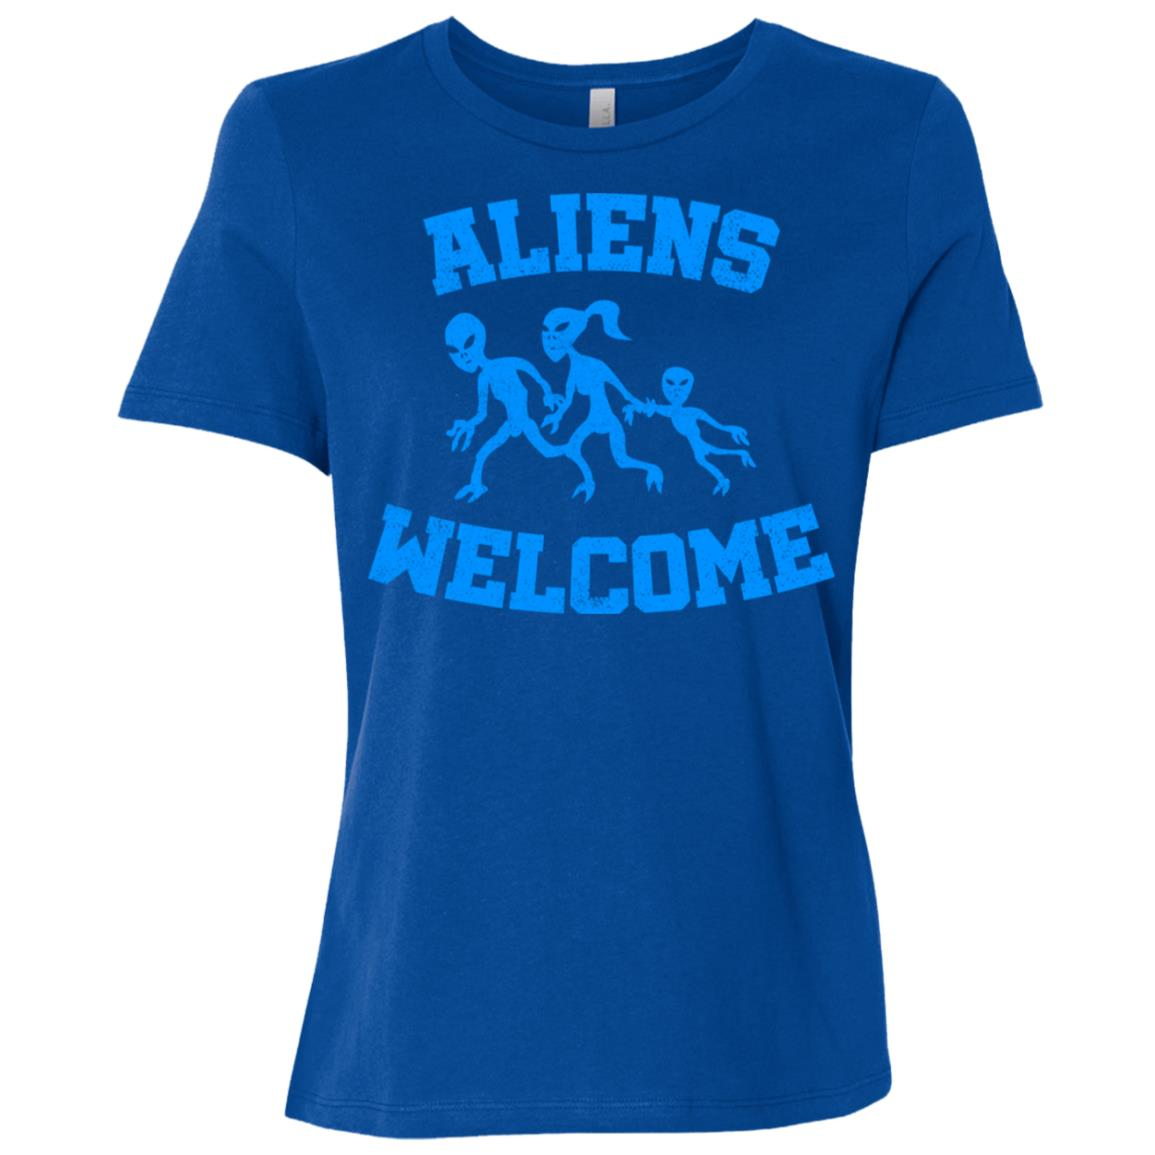 Aliens welcome funny alien and extraterrestrial ls -2 Women Short Sleeve T-Shirt